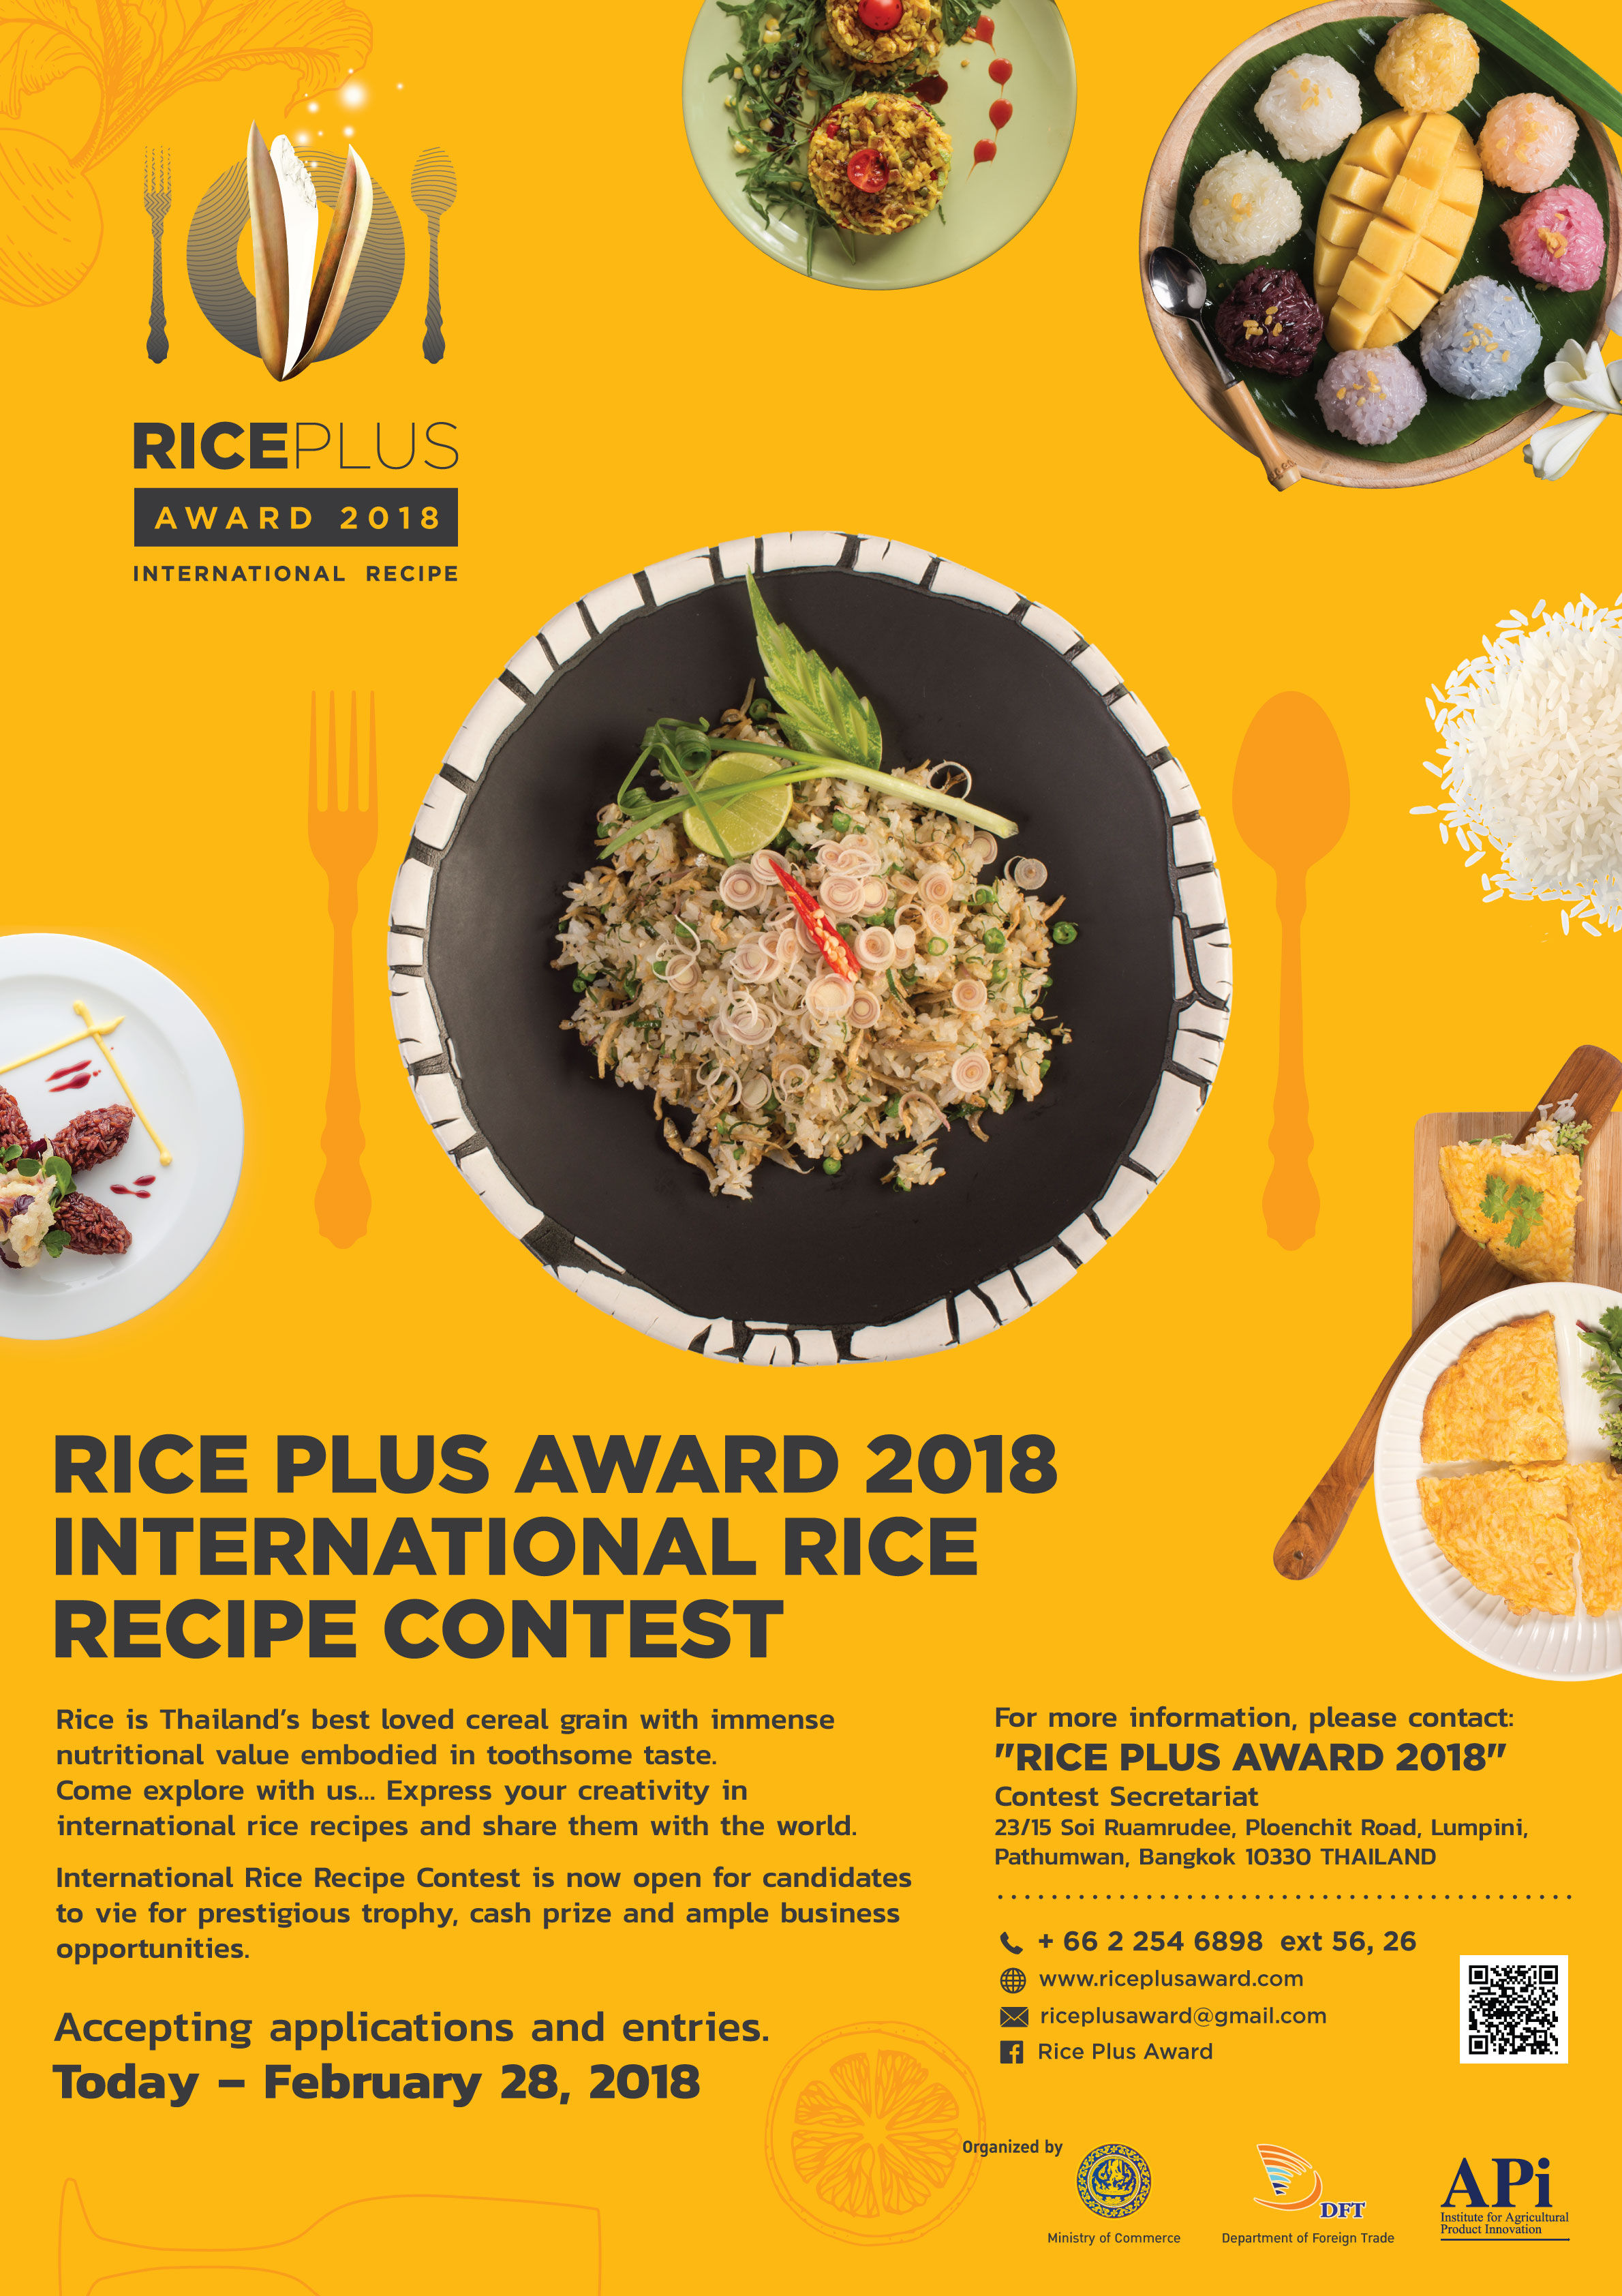 RICE PLUS AWARD 2018